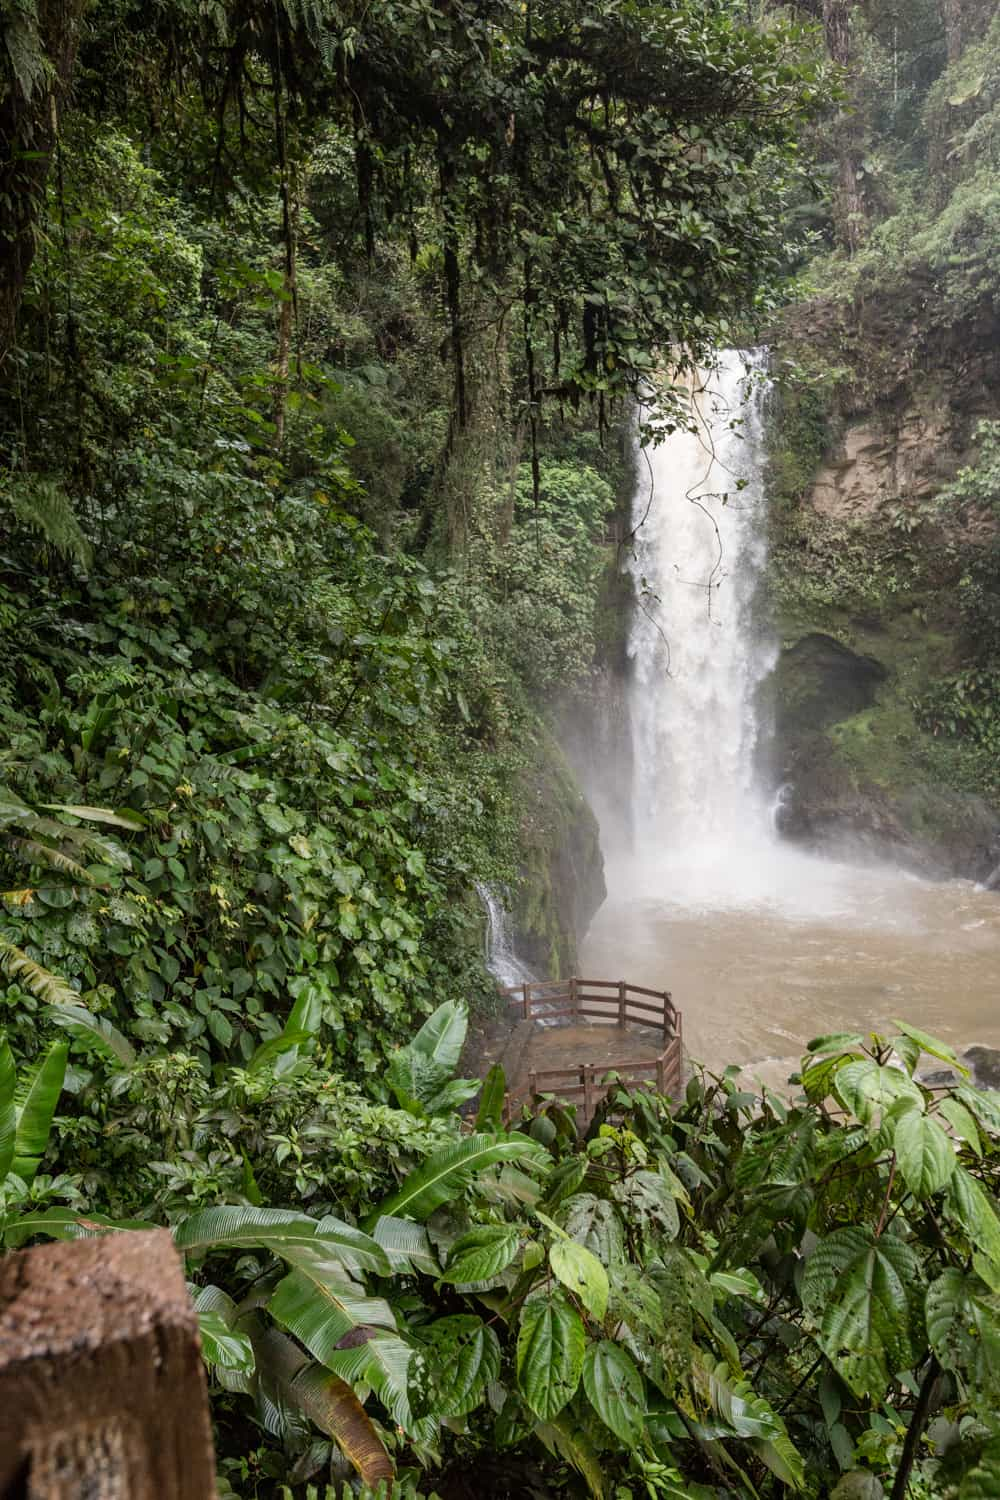 Photo of waterfall lower terrace from upper gazebo at Magia Blanca Waterfall.